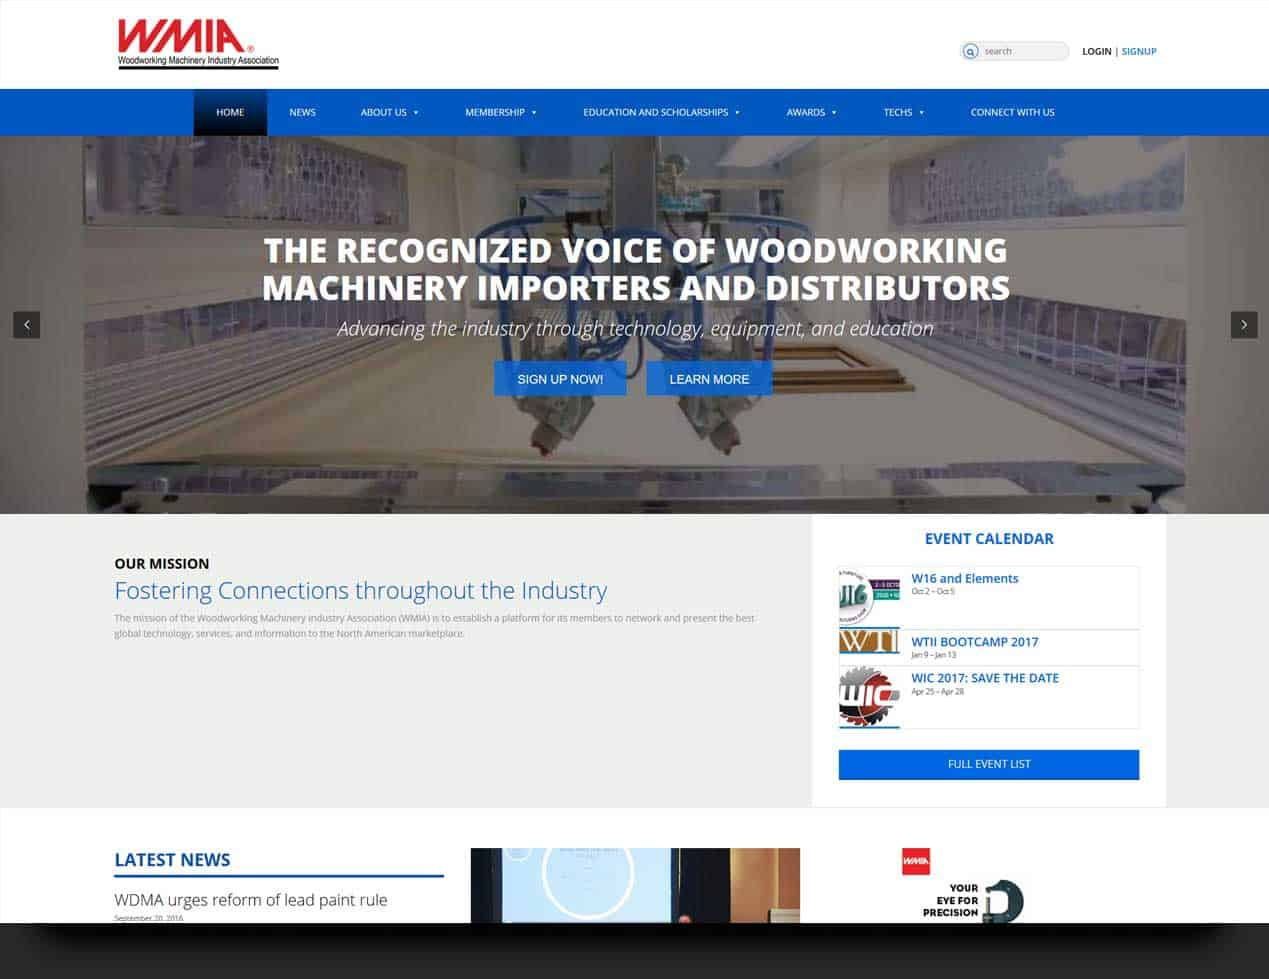 WMIA Selects To The Moon Media For A New Member Site